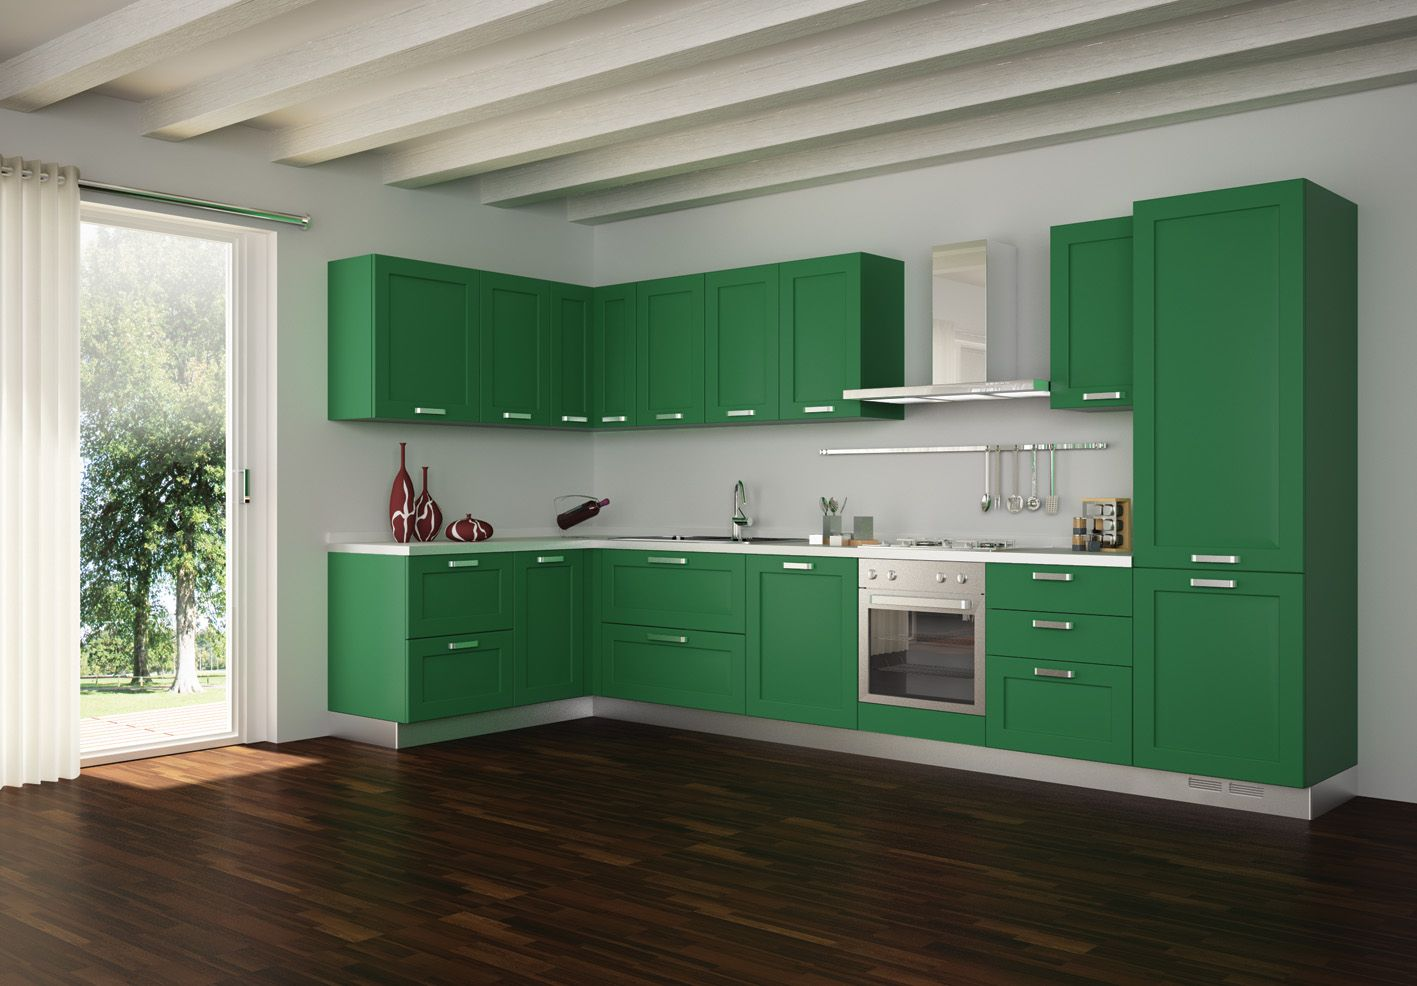 Fetching Pictures Of Green Kitchen Cabinets : Enthralling Teal Green Kitchen  Cabinet In Minimalist LShaped Kitchen